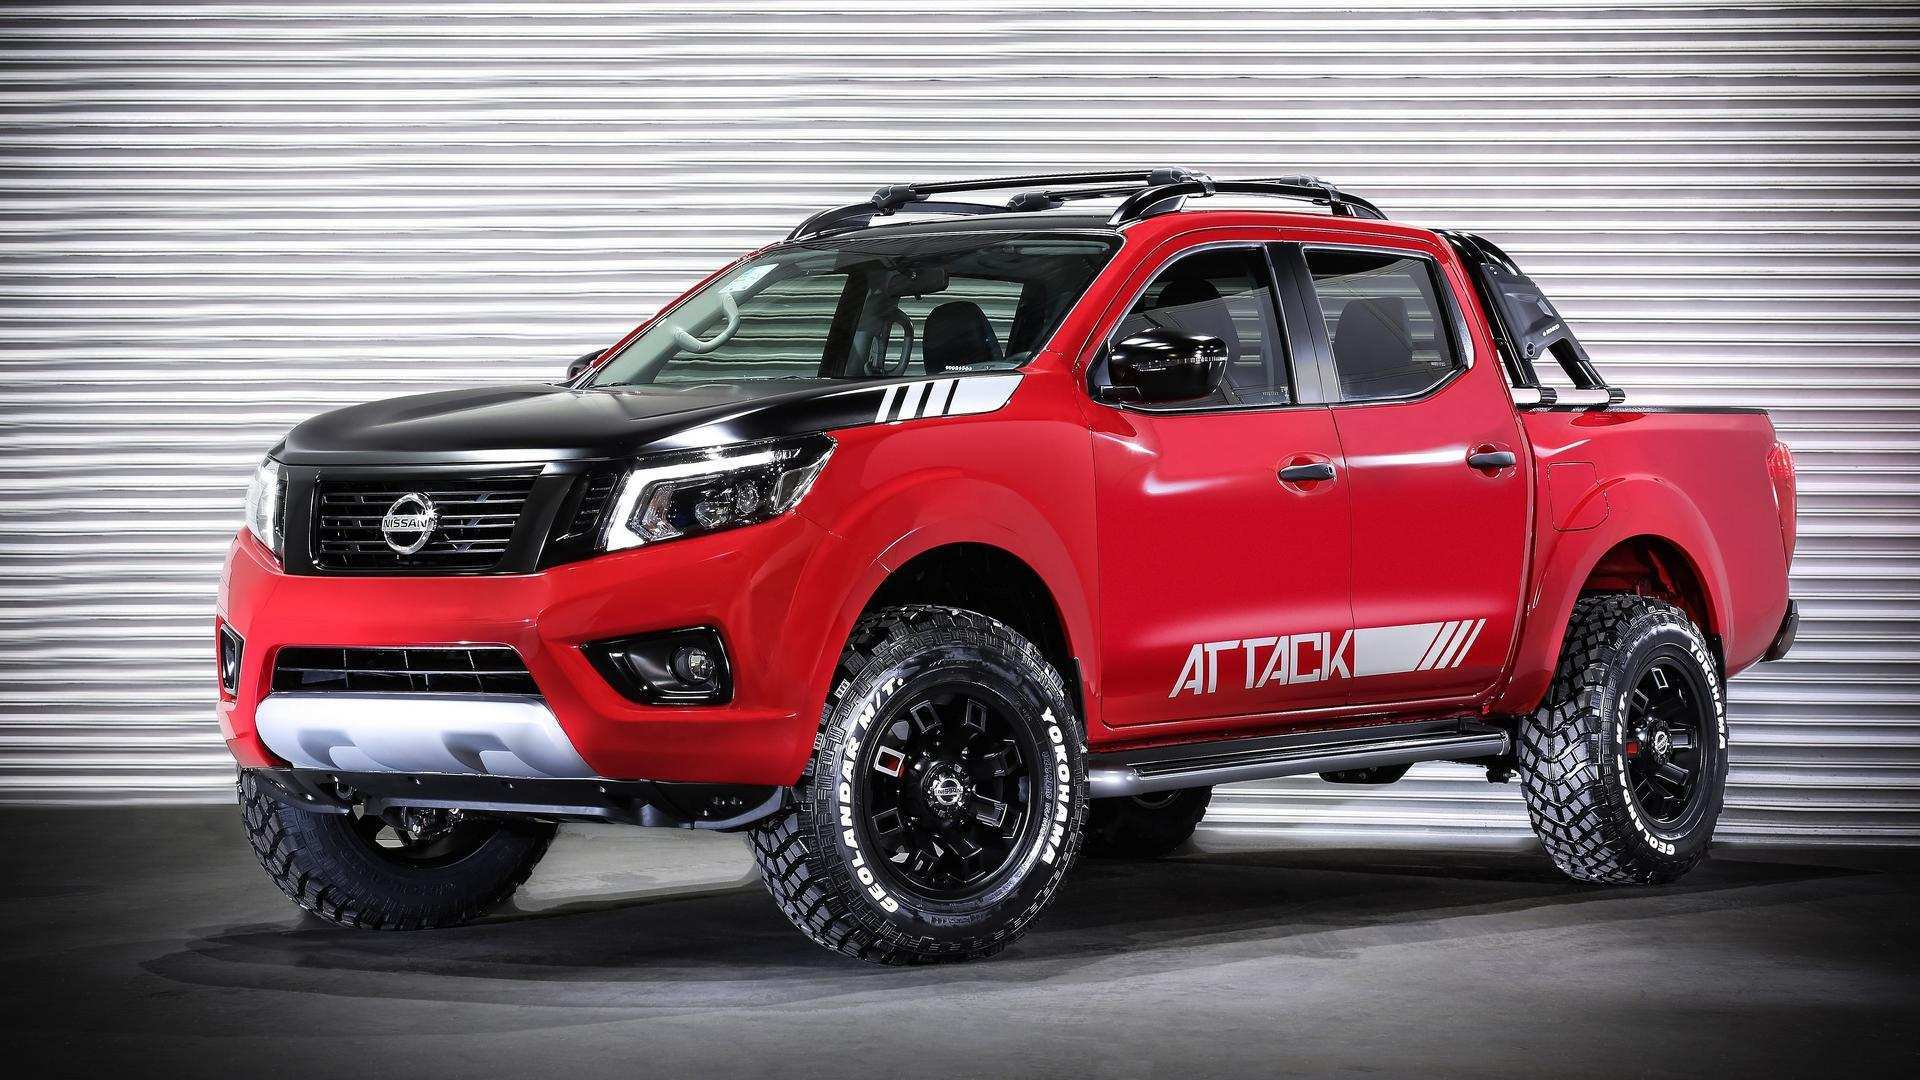 93 Gallery of 2019 Nissan Frontier Attack Redesign with 2019 Nissan Frontier Attack